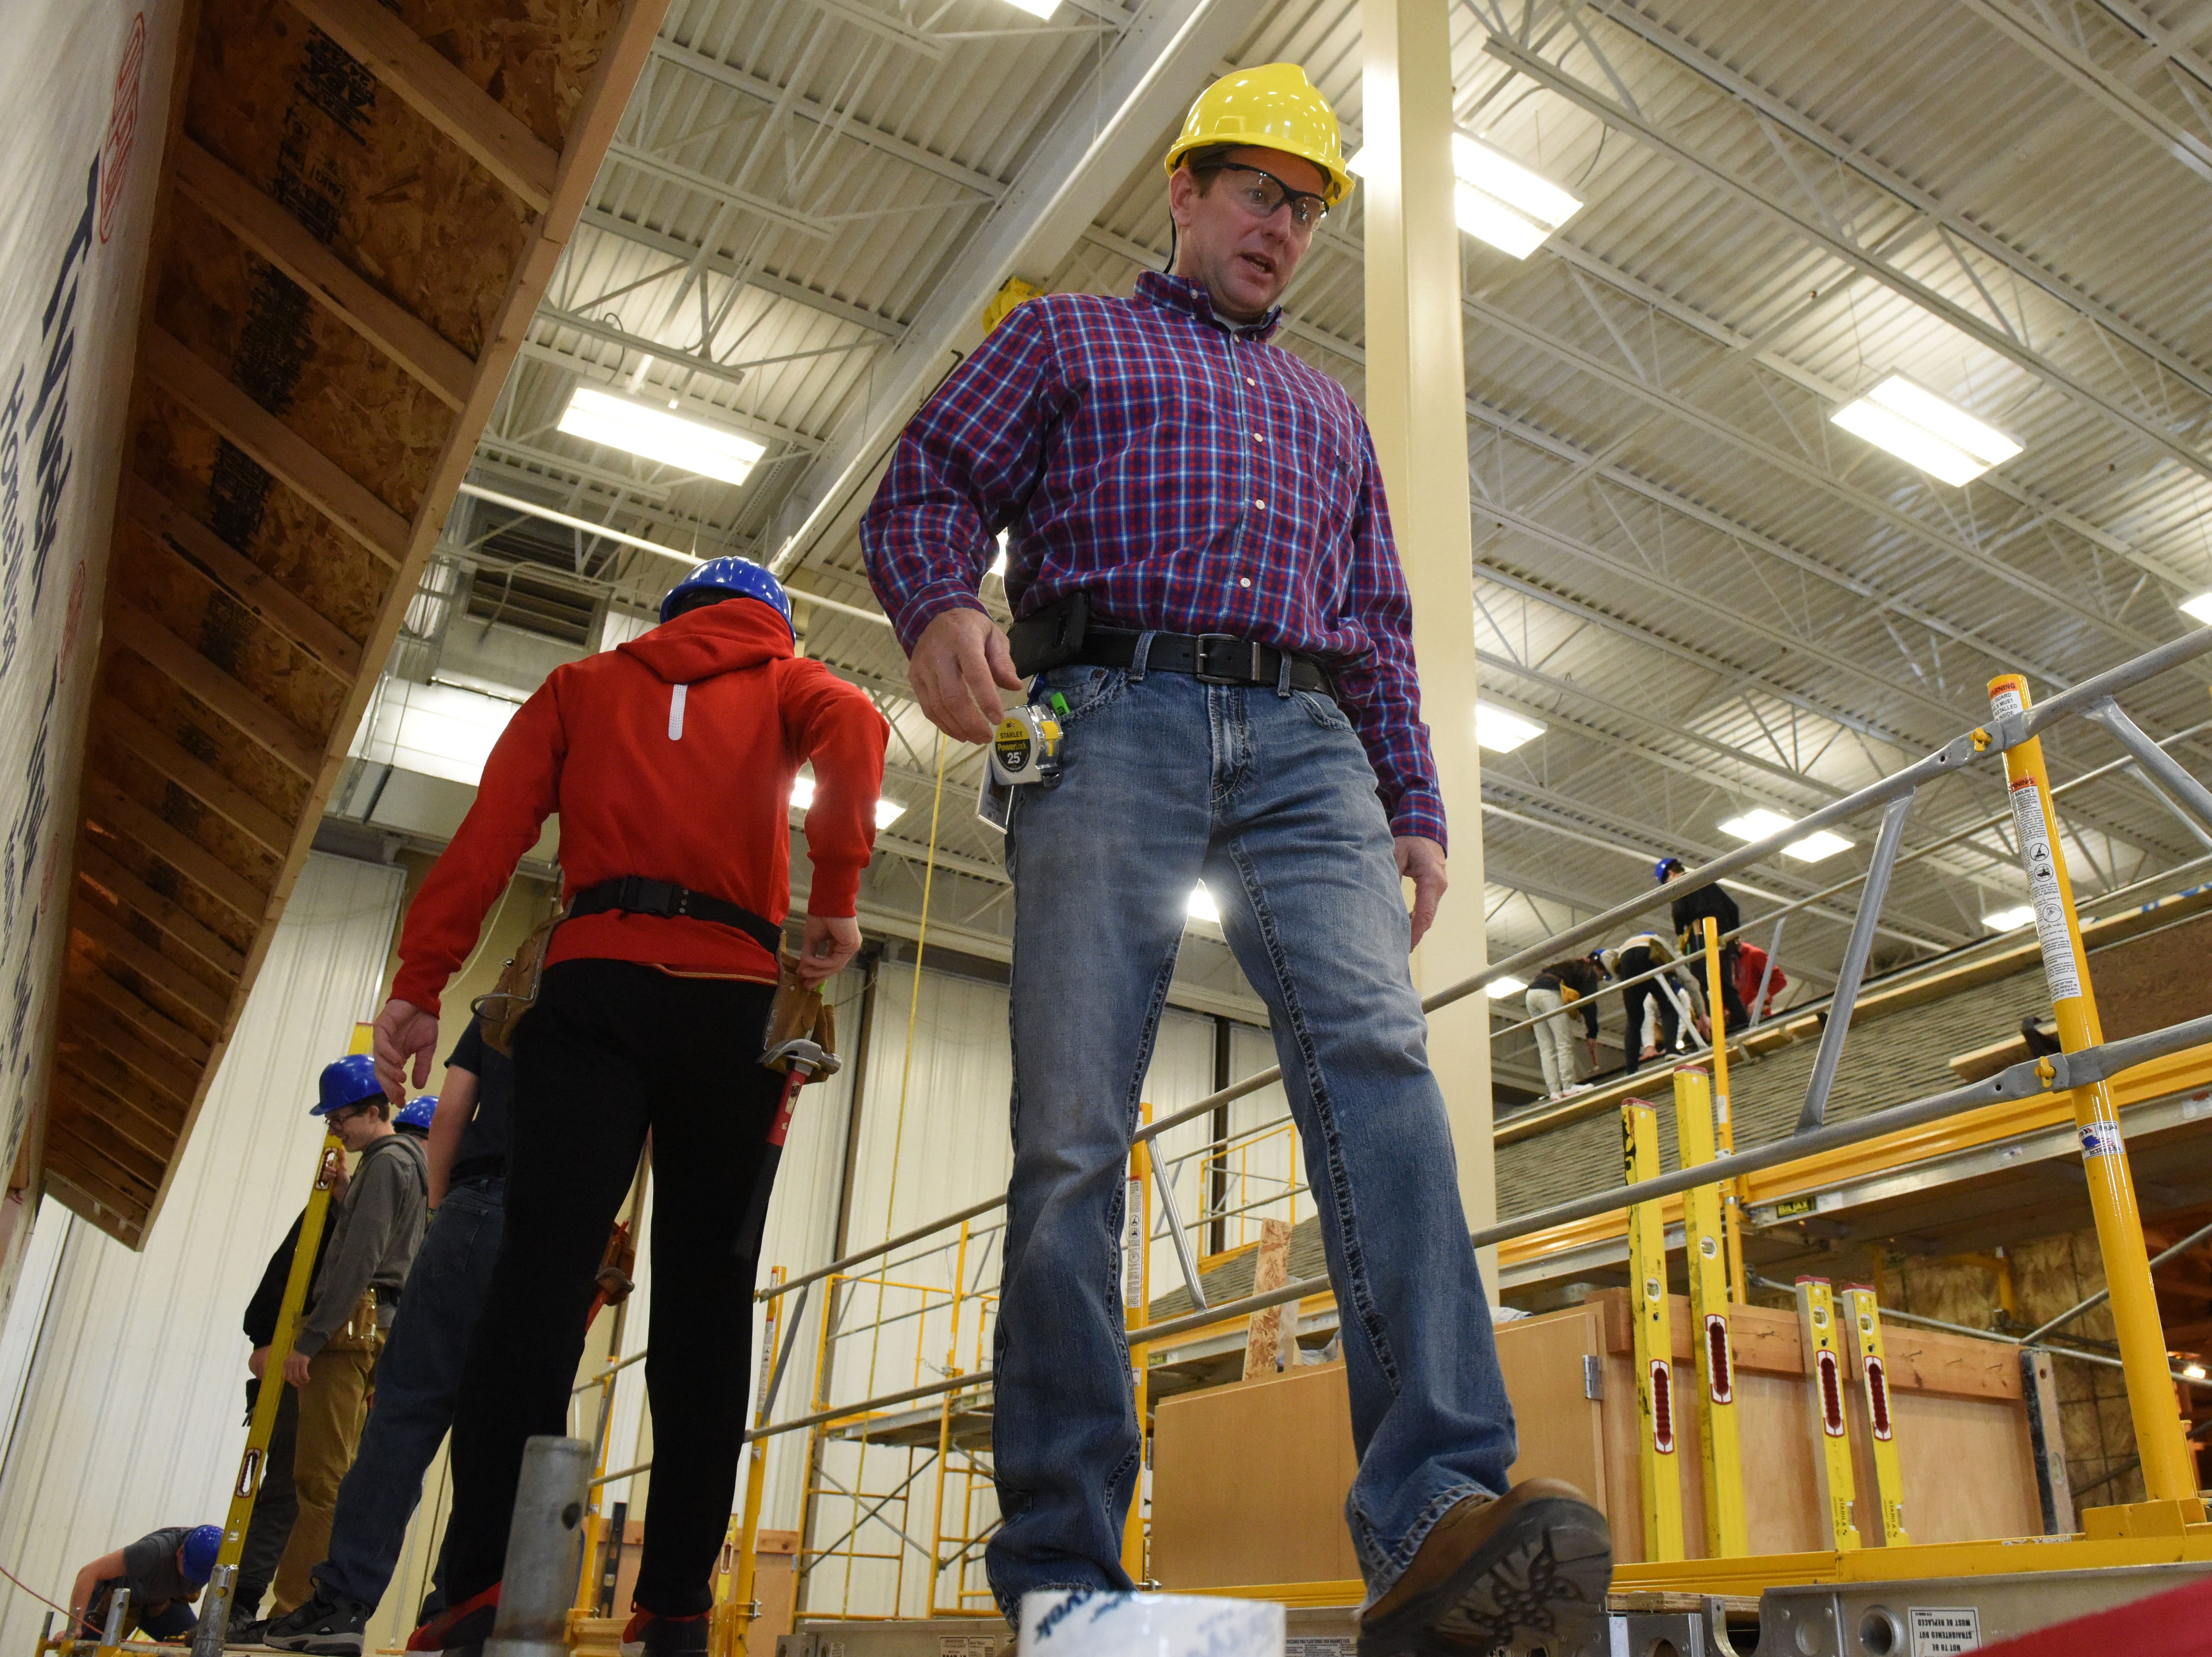 Instructor Nick Opdahl teaches his students how to build a house in carpentry class at Career and Technical Education Academy, Monday, Jan. 7, 2019 in Sioux Falls, S.D.